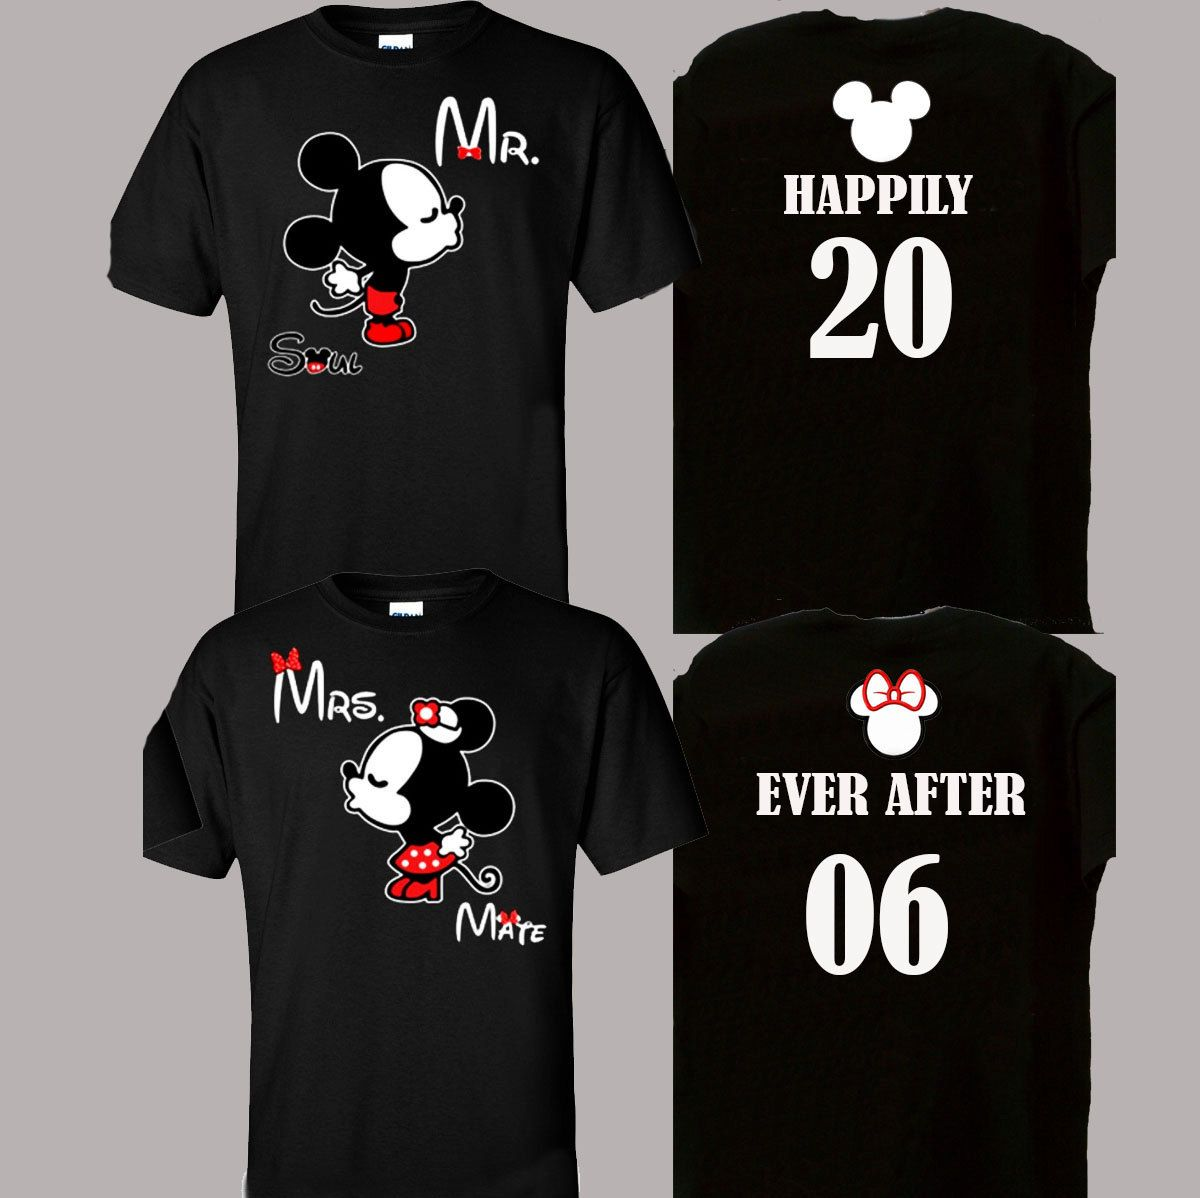 5e73f9ae1a4ea Happily Ever After Couples Shirts Mickey Minnie Mouse Design Mr Mrs ...